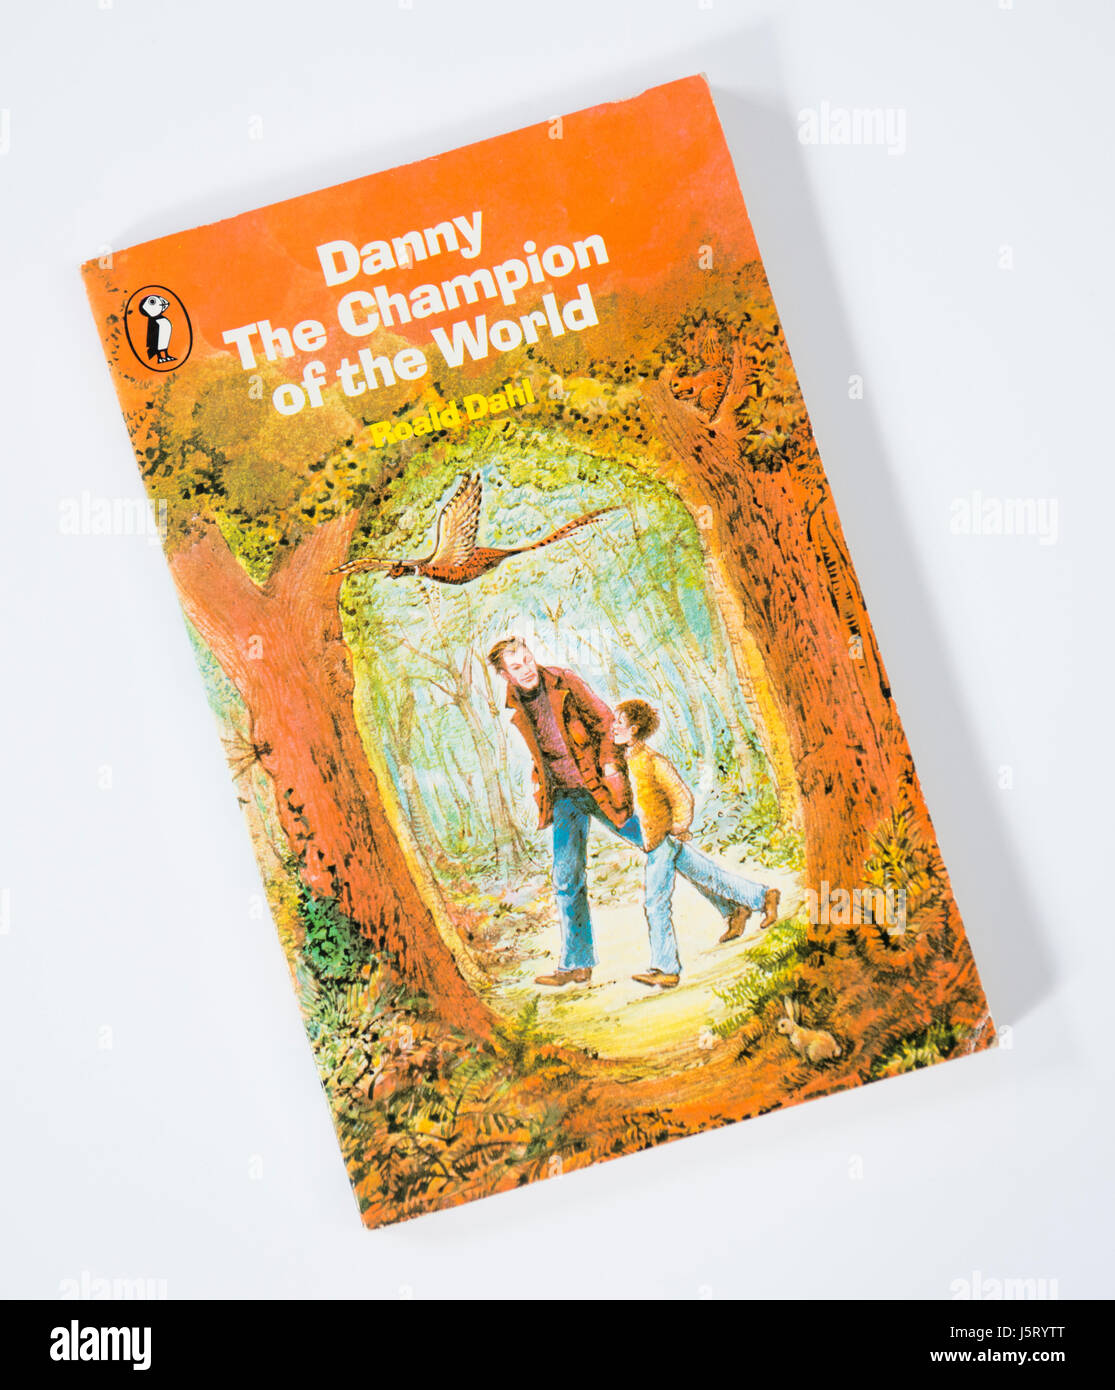 Danny The Champion of the World by Roald Dahl - Stock Image